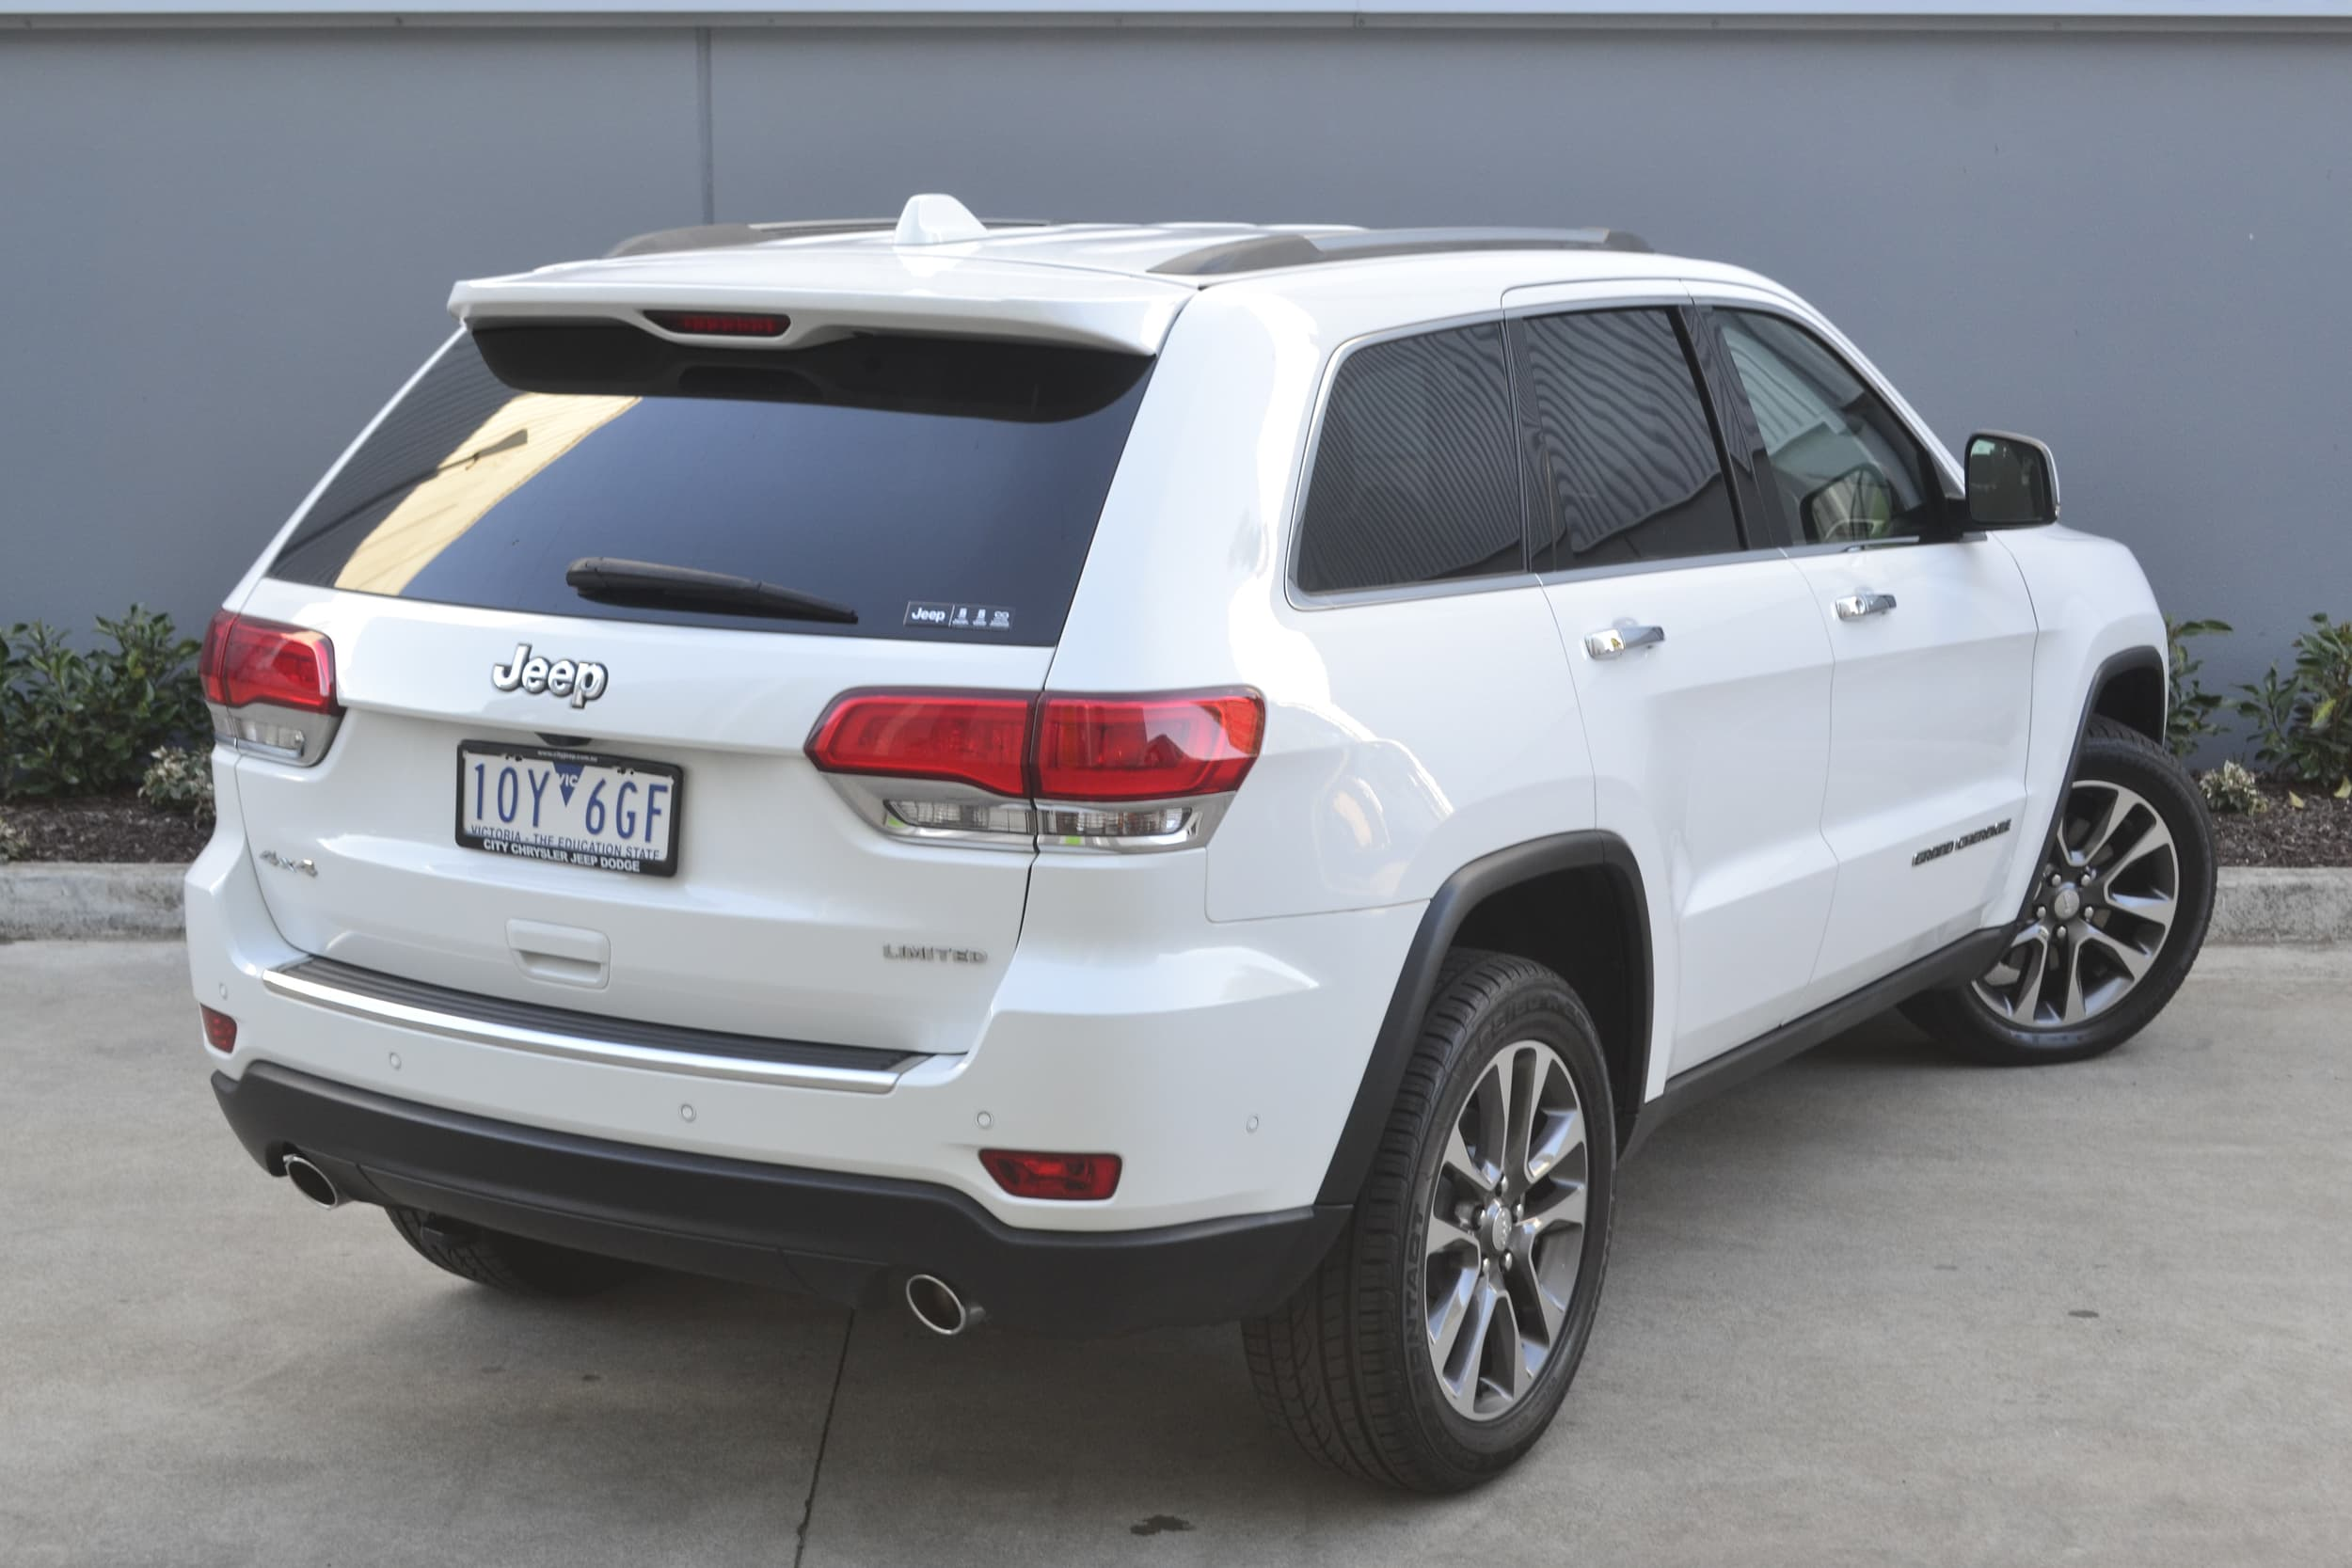 2019 Jeep Grand Cherokee Limited Auto 4x4 MY19 - image 21